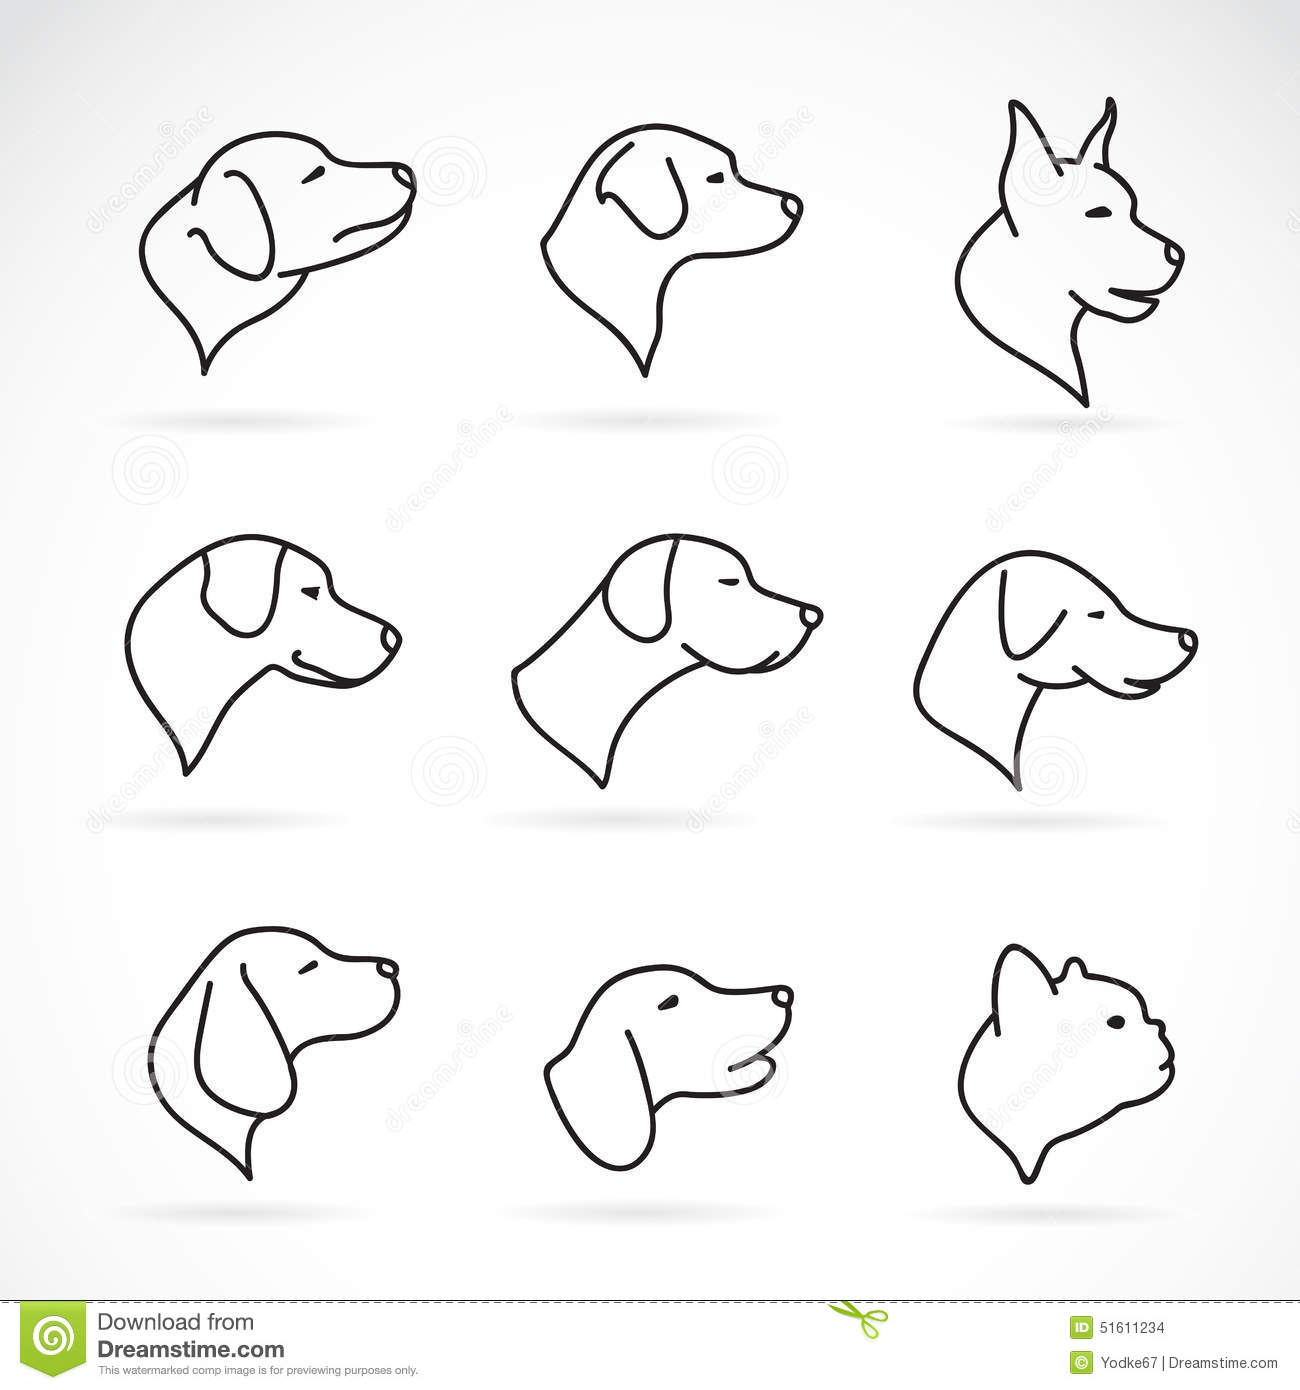 Vector Image Of An Dog Head Illustration 51611234 Megapixl